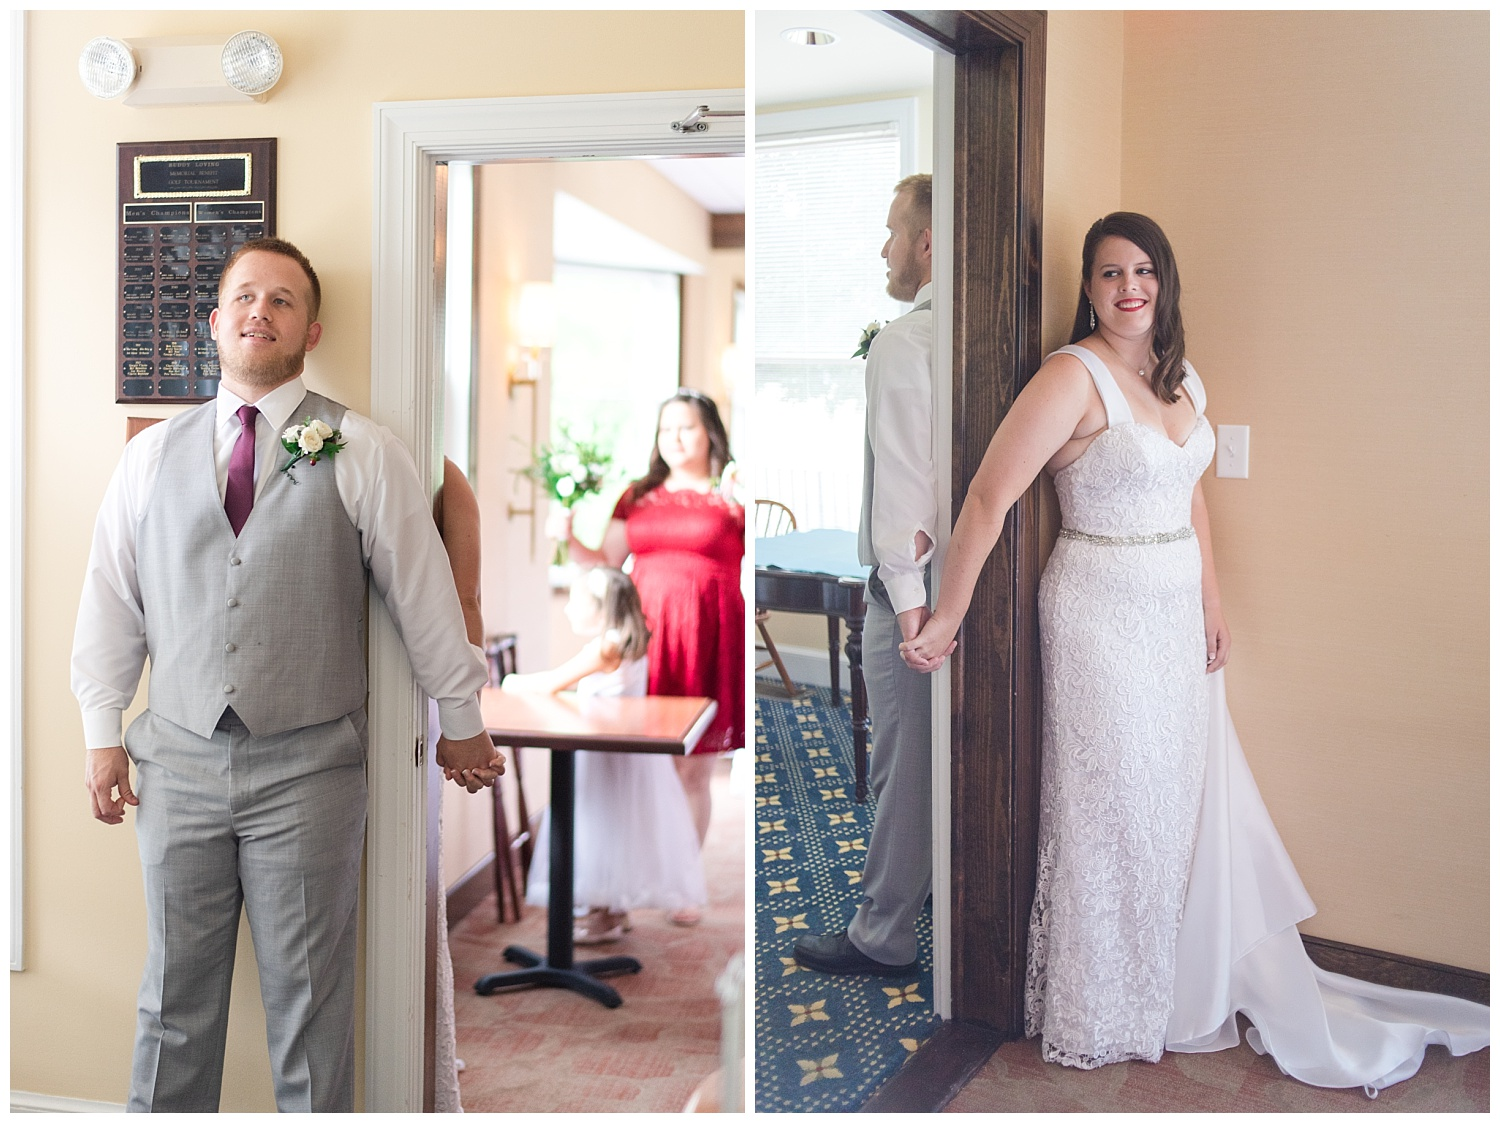 MJMP Richmond Wedding Photographer Indian Creek Yacht Country Club Wedding Photo_0031.jpg